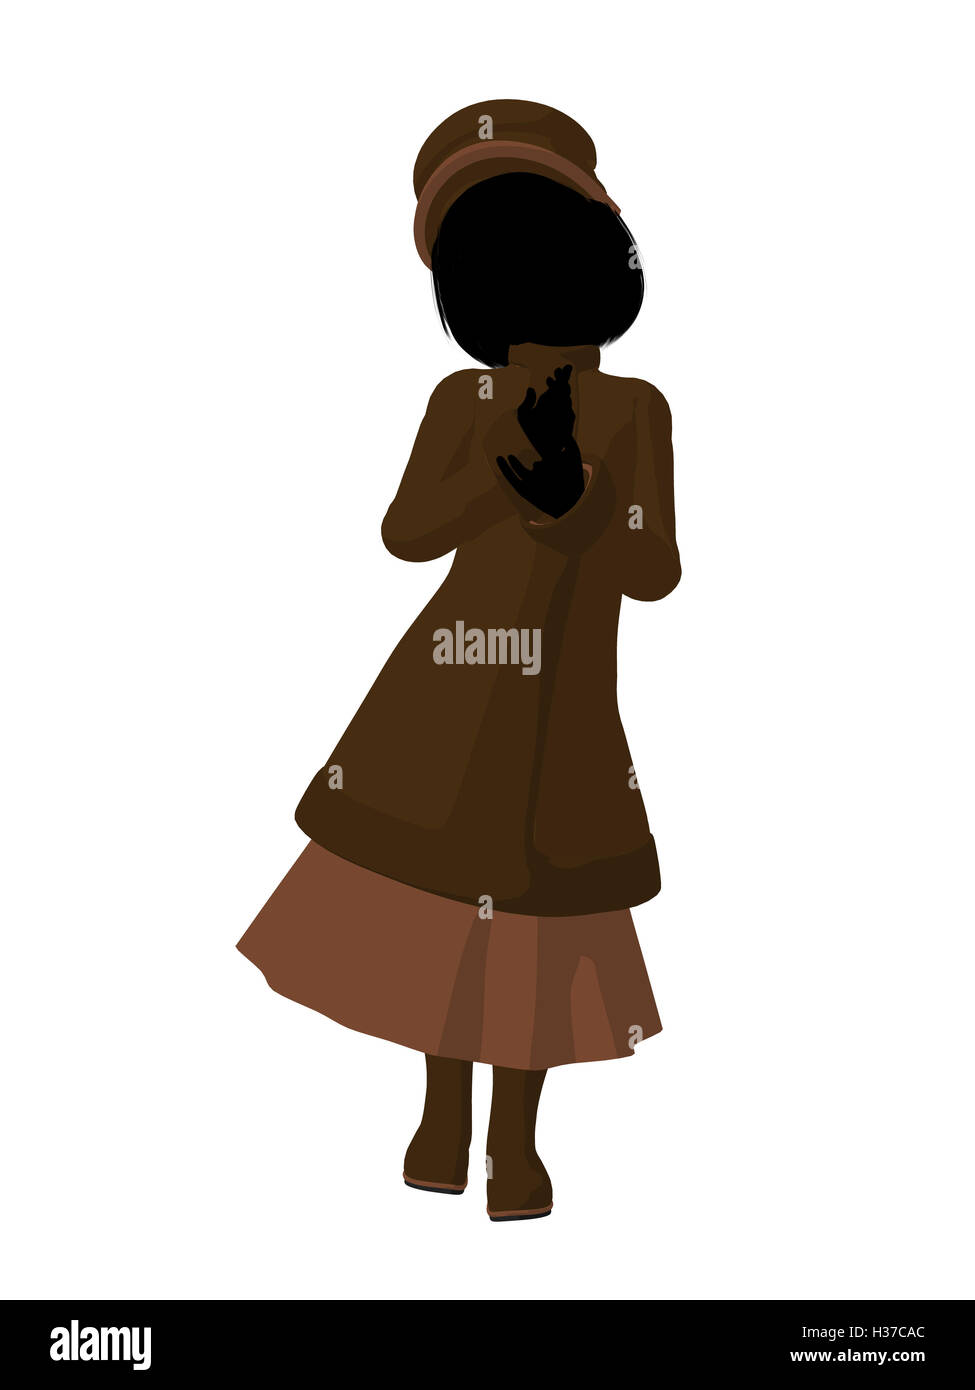 636fbc62b85 Victorian Girl Illustration Silhouette Stock Photo  122479908 - Alamy